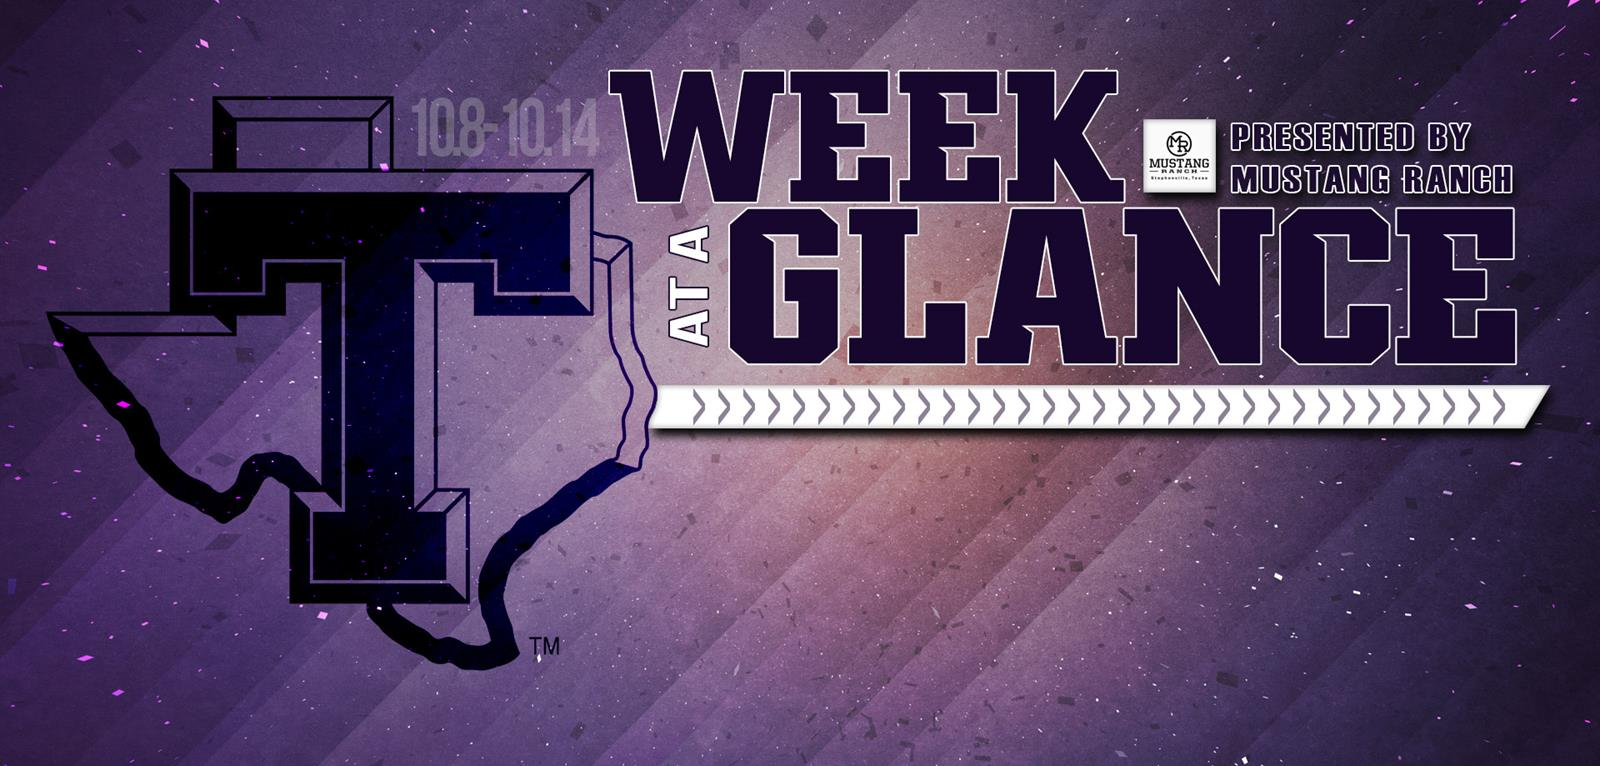 week at a glance tarleton on collision course for commerce in high octane weekend